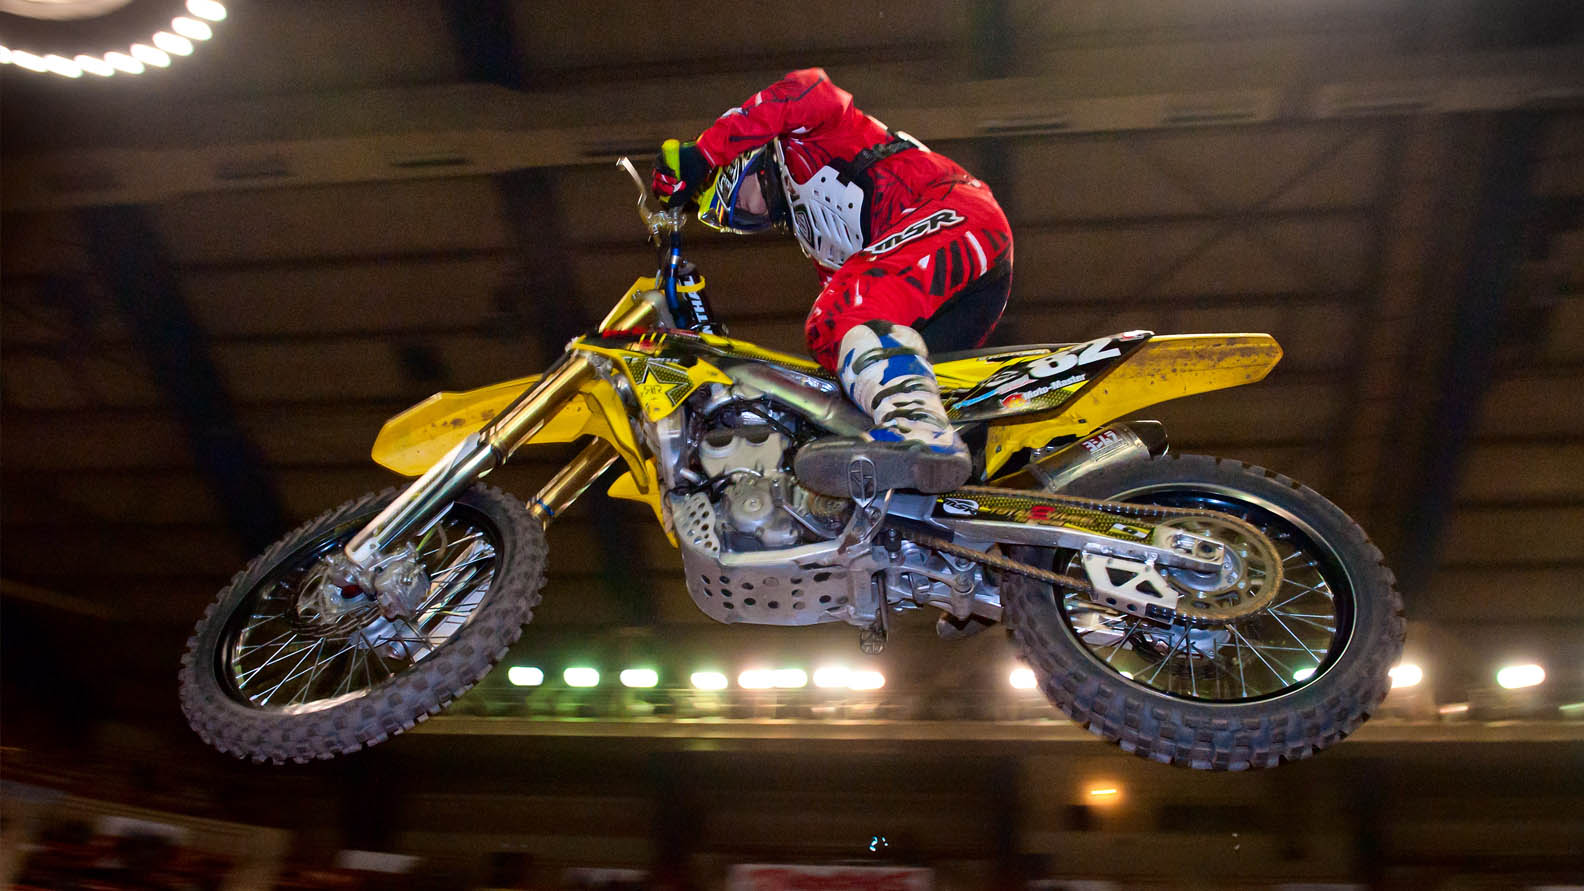 Bikes Harrisburg Pa Arenacross bike taking flight